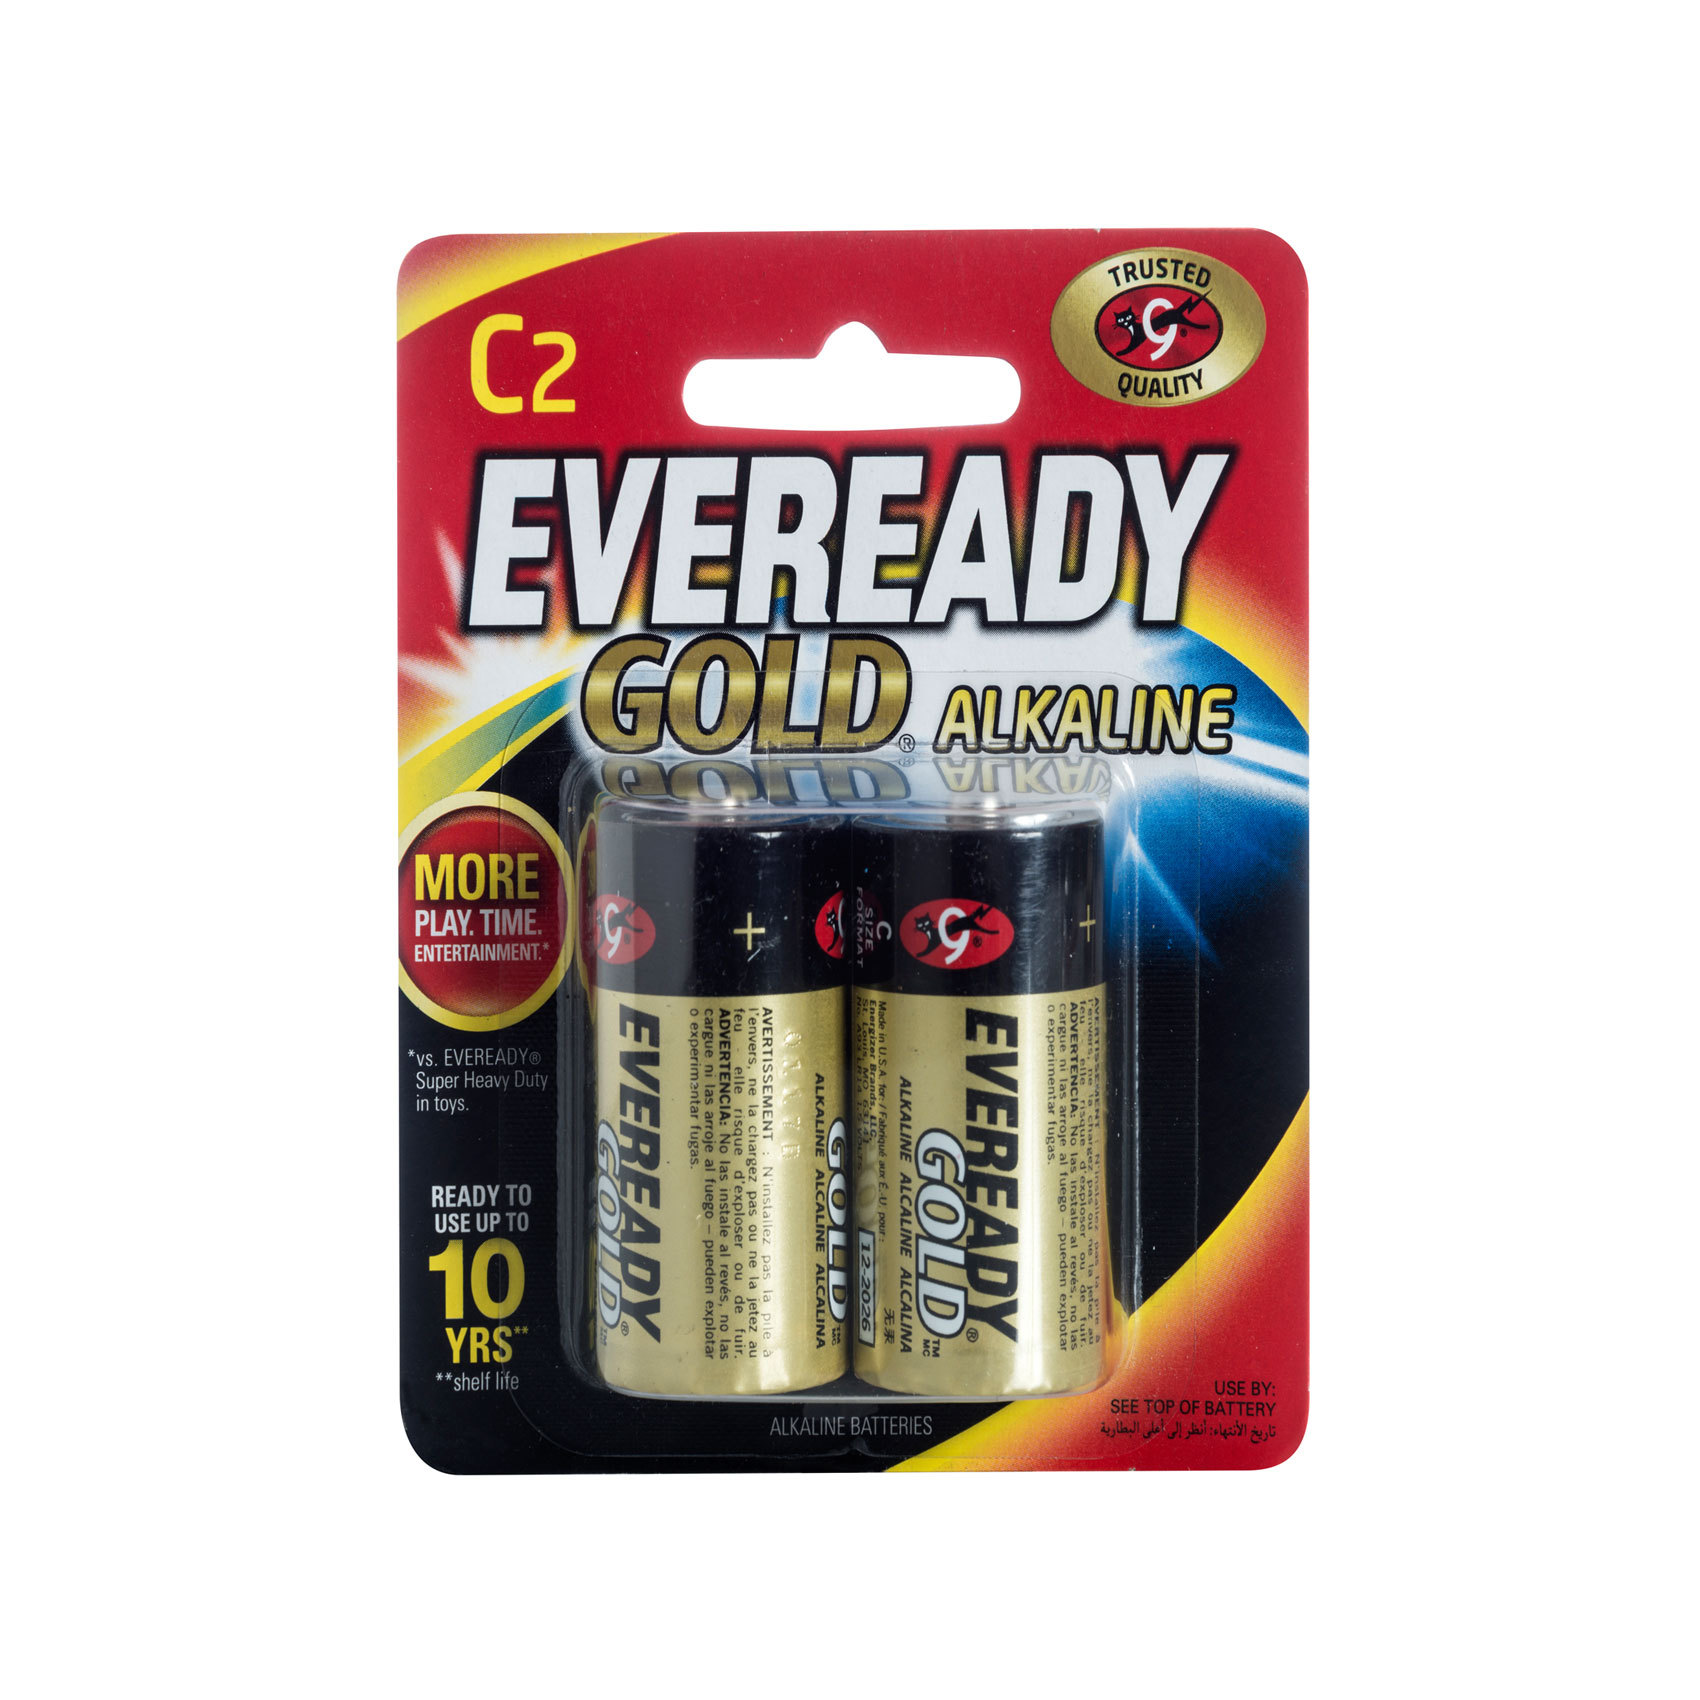 EVEREADY BATTERY CX2 ALKALINE